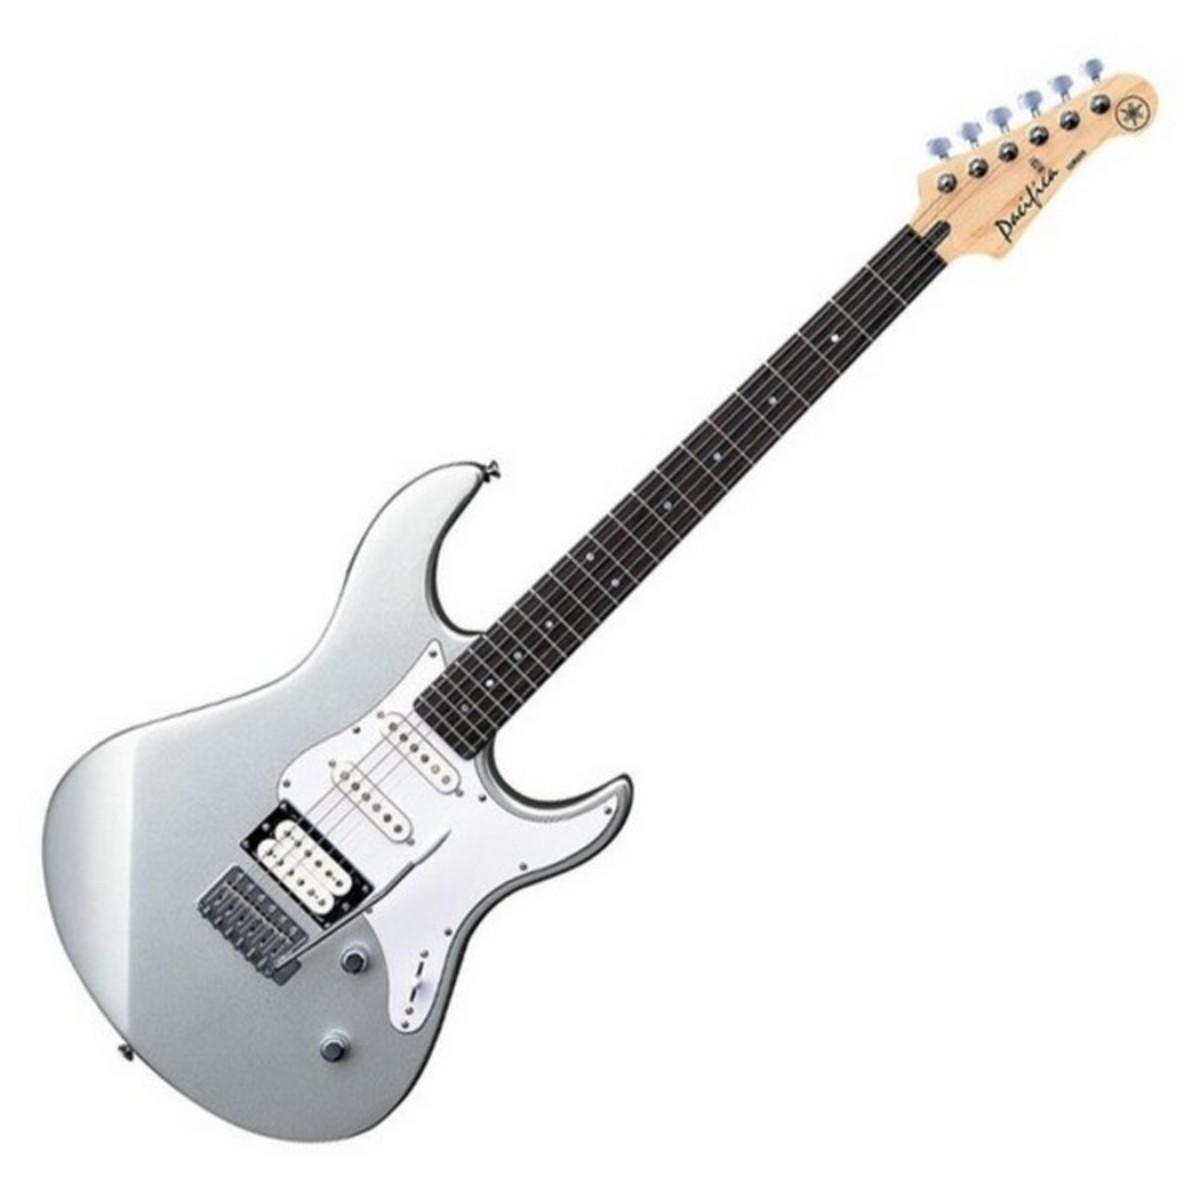 yamaha pacifica 112v electric guitar silver at. Black Bedroom Furniture Sets. Home Design Ideas